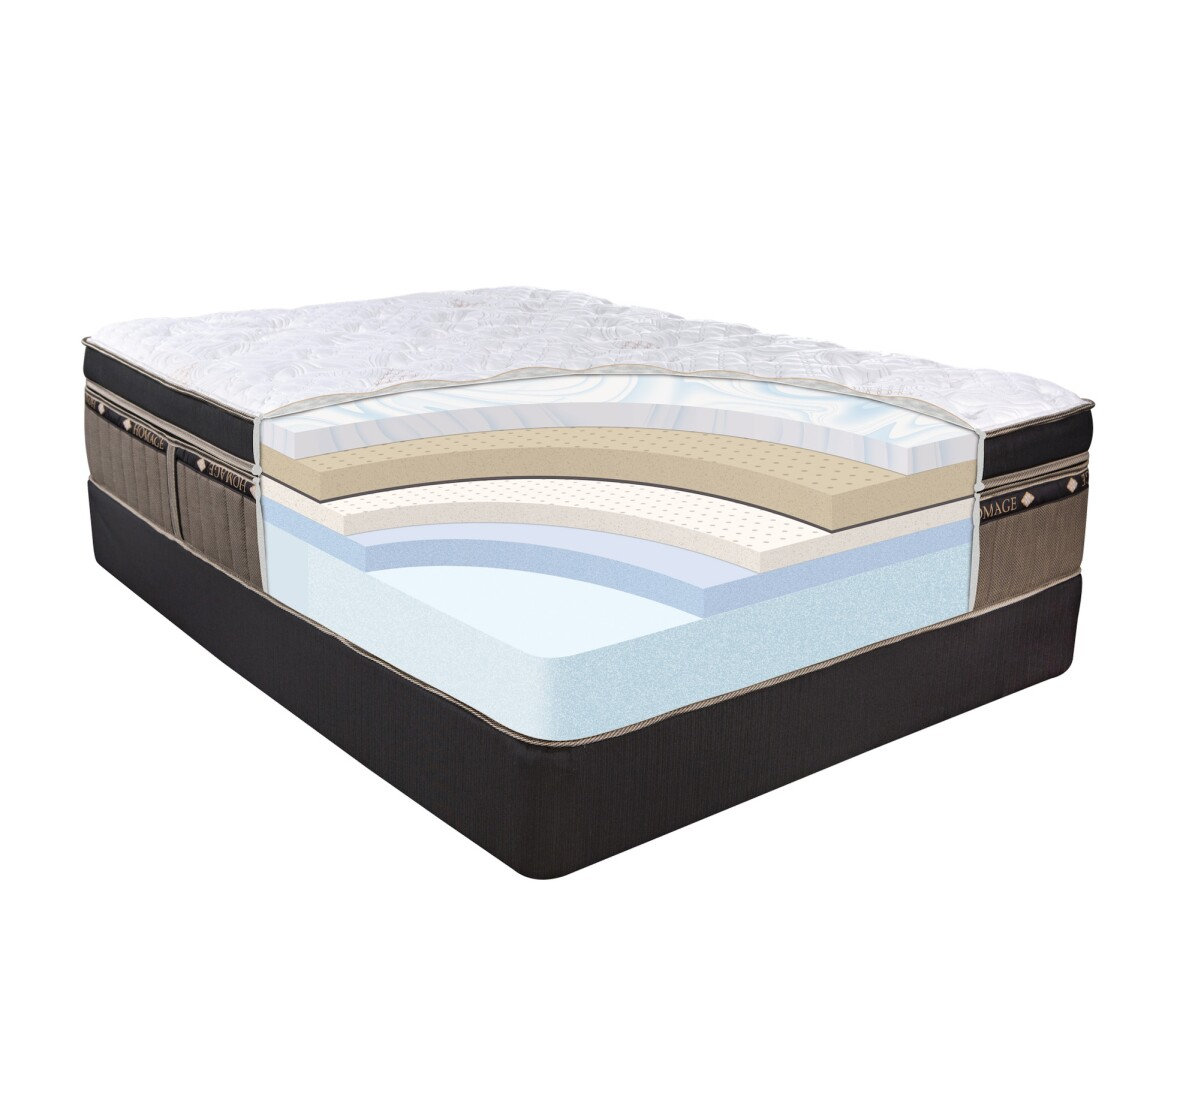 127149_Homage_Respect Plush Euro Top Mattress  (1).jpg